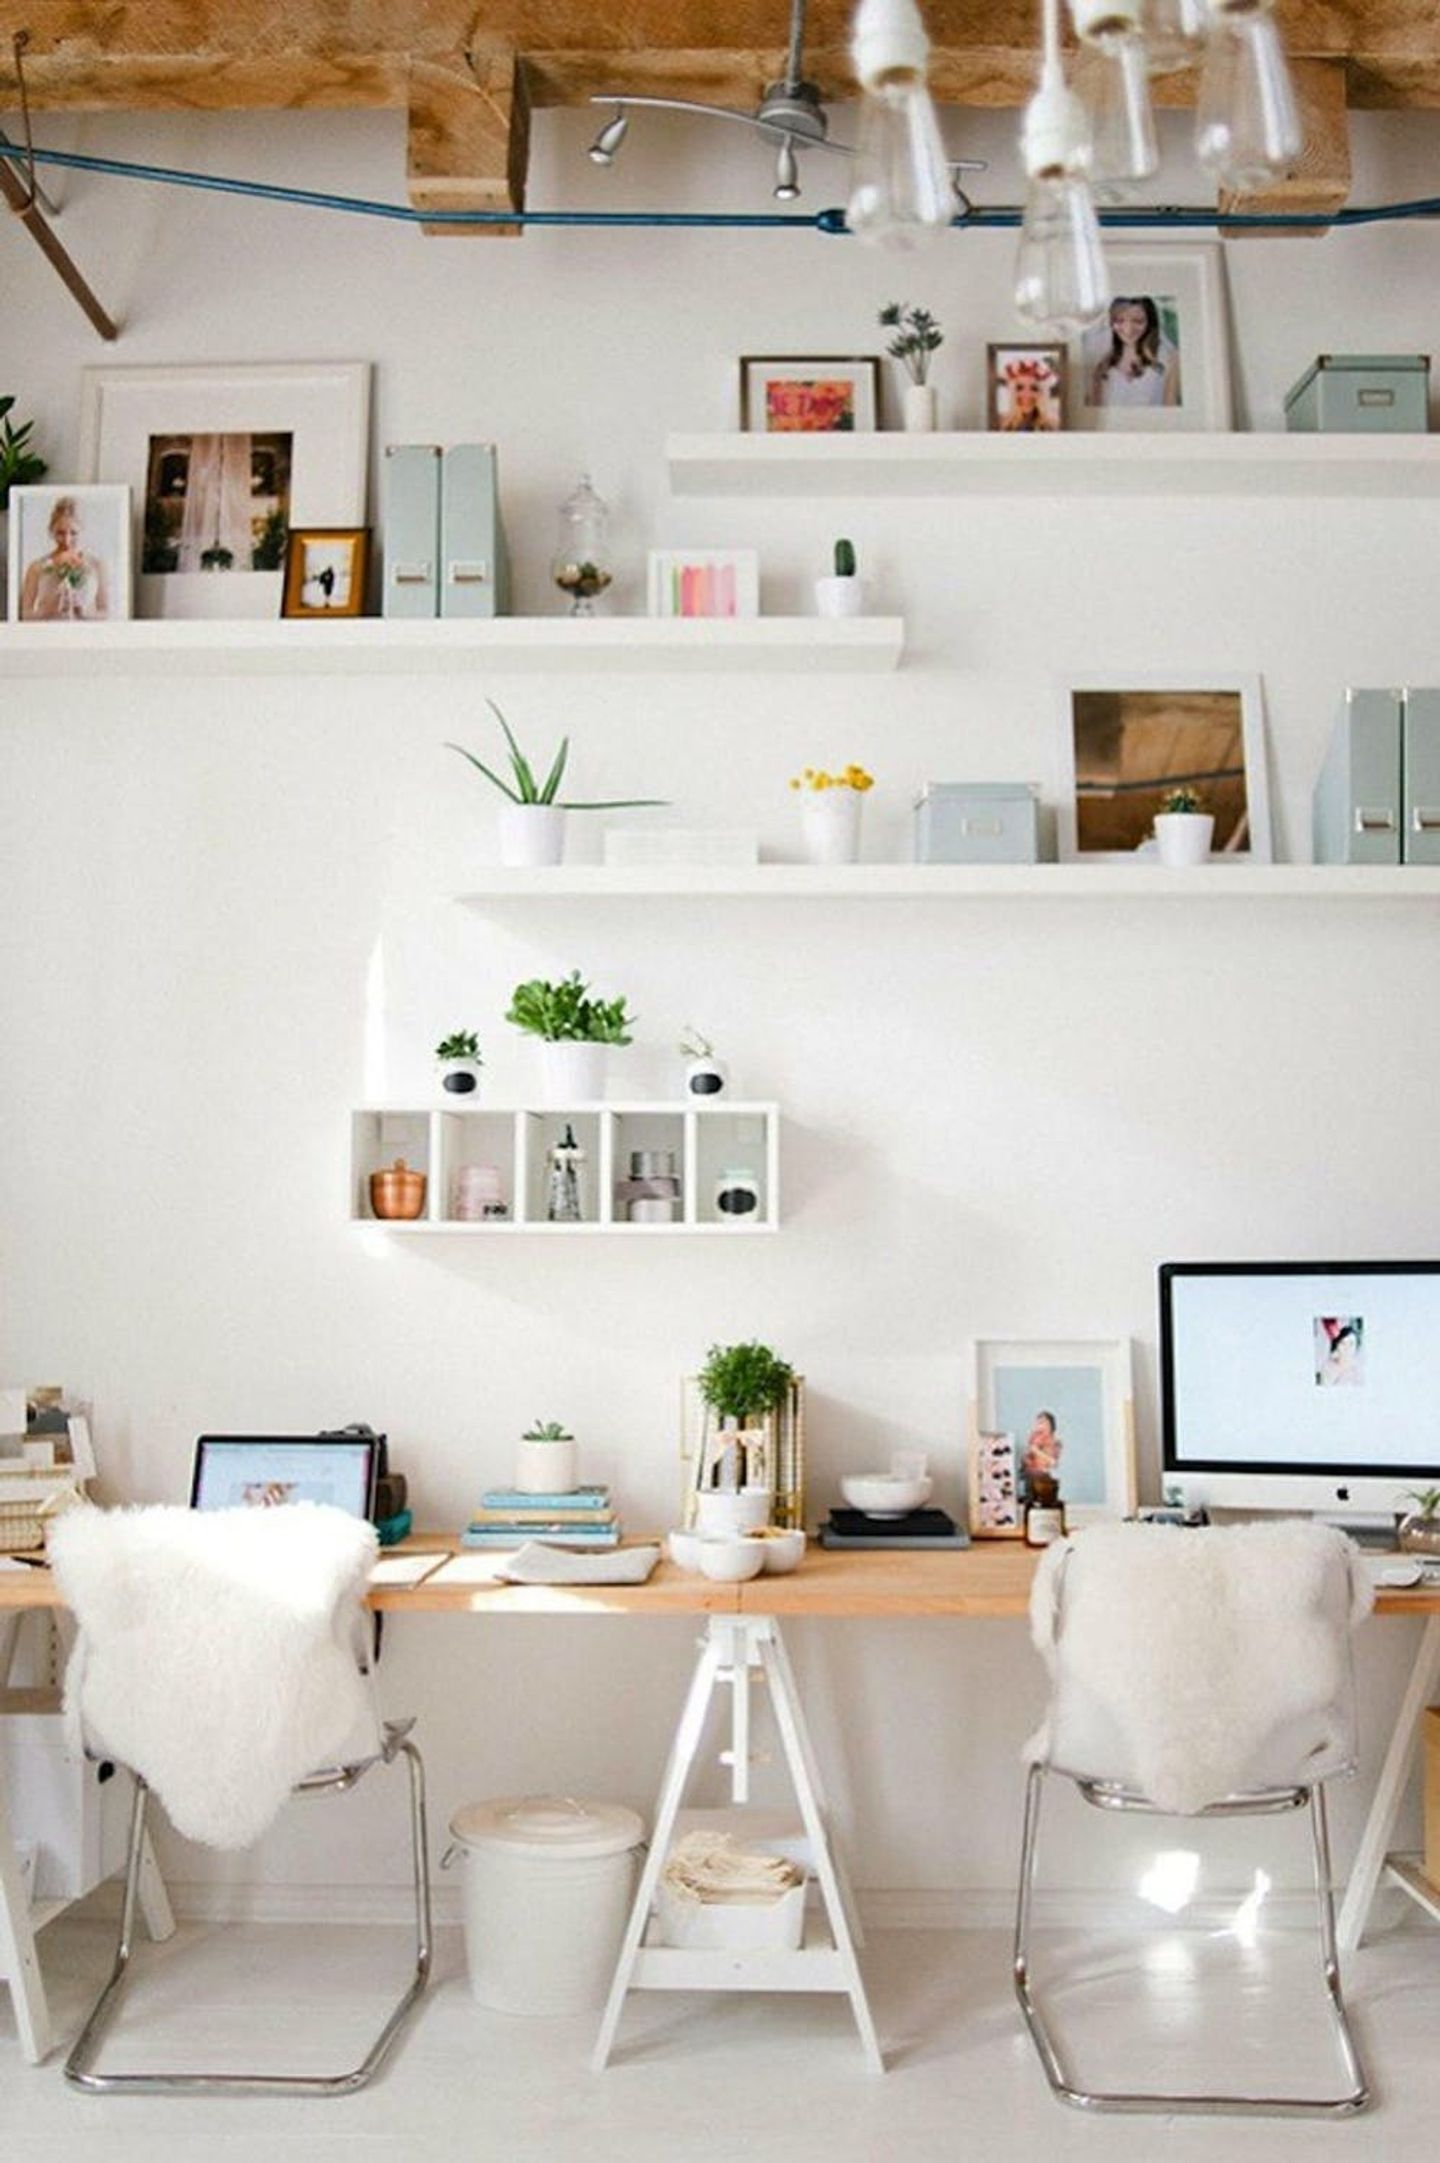 21 Ikea Desk Hacks For The Most Productive Workspace Ever Chichomeofficedesigndecorating In 2020 Home Office Design Home Decor Workspace Desk